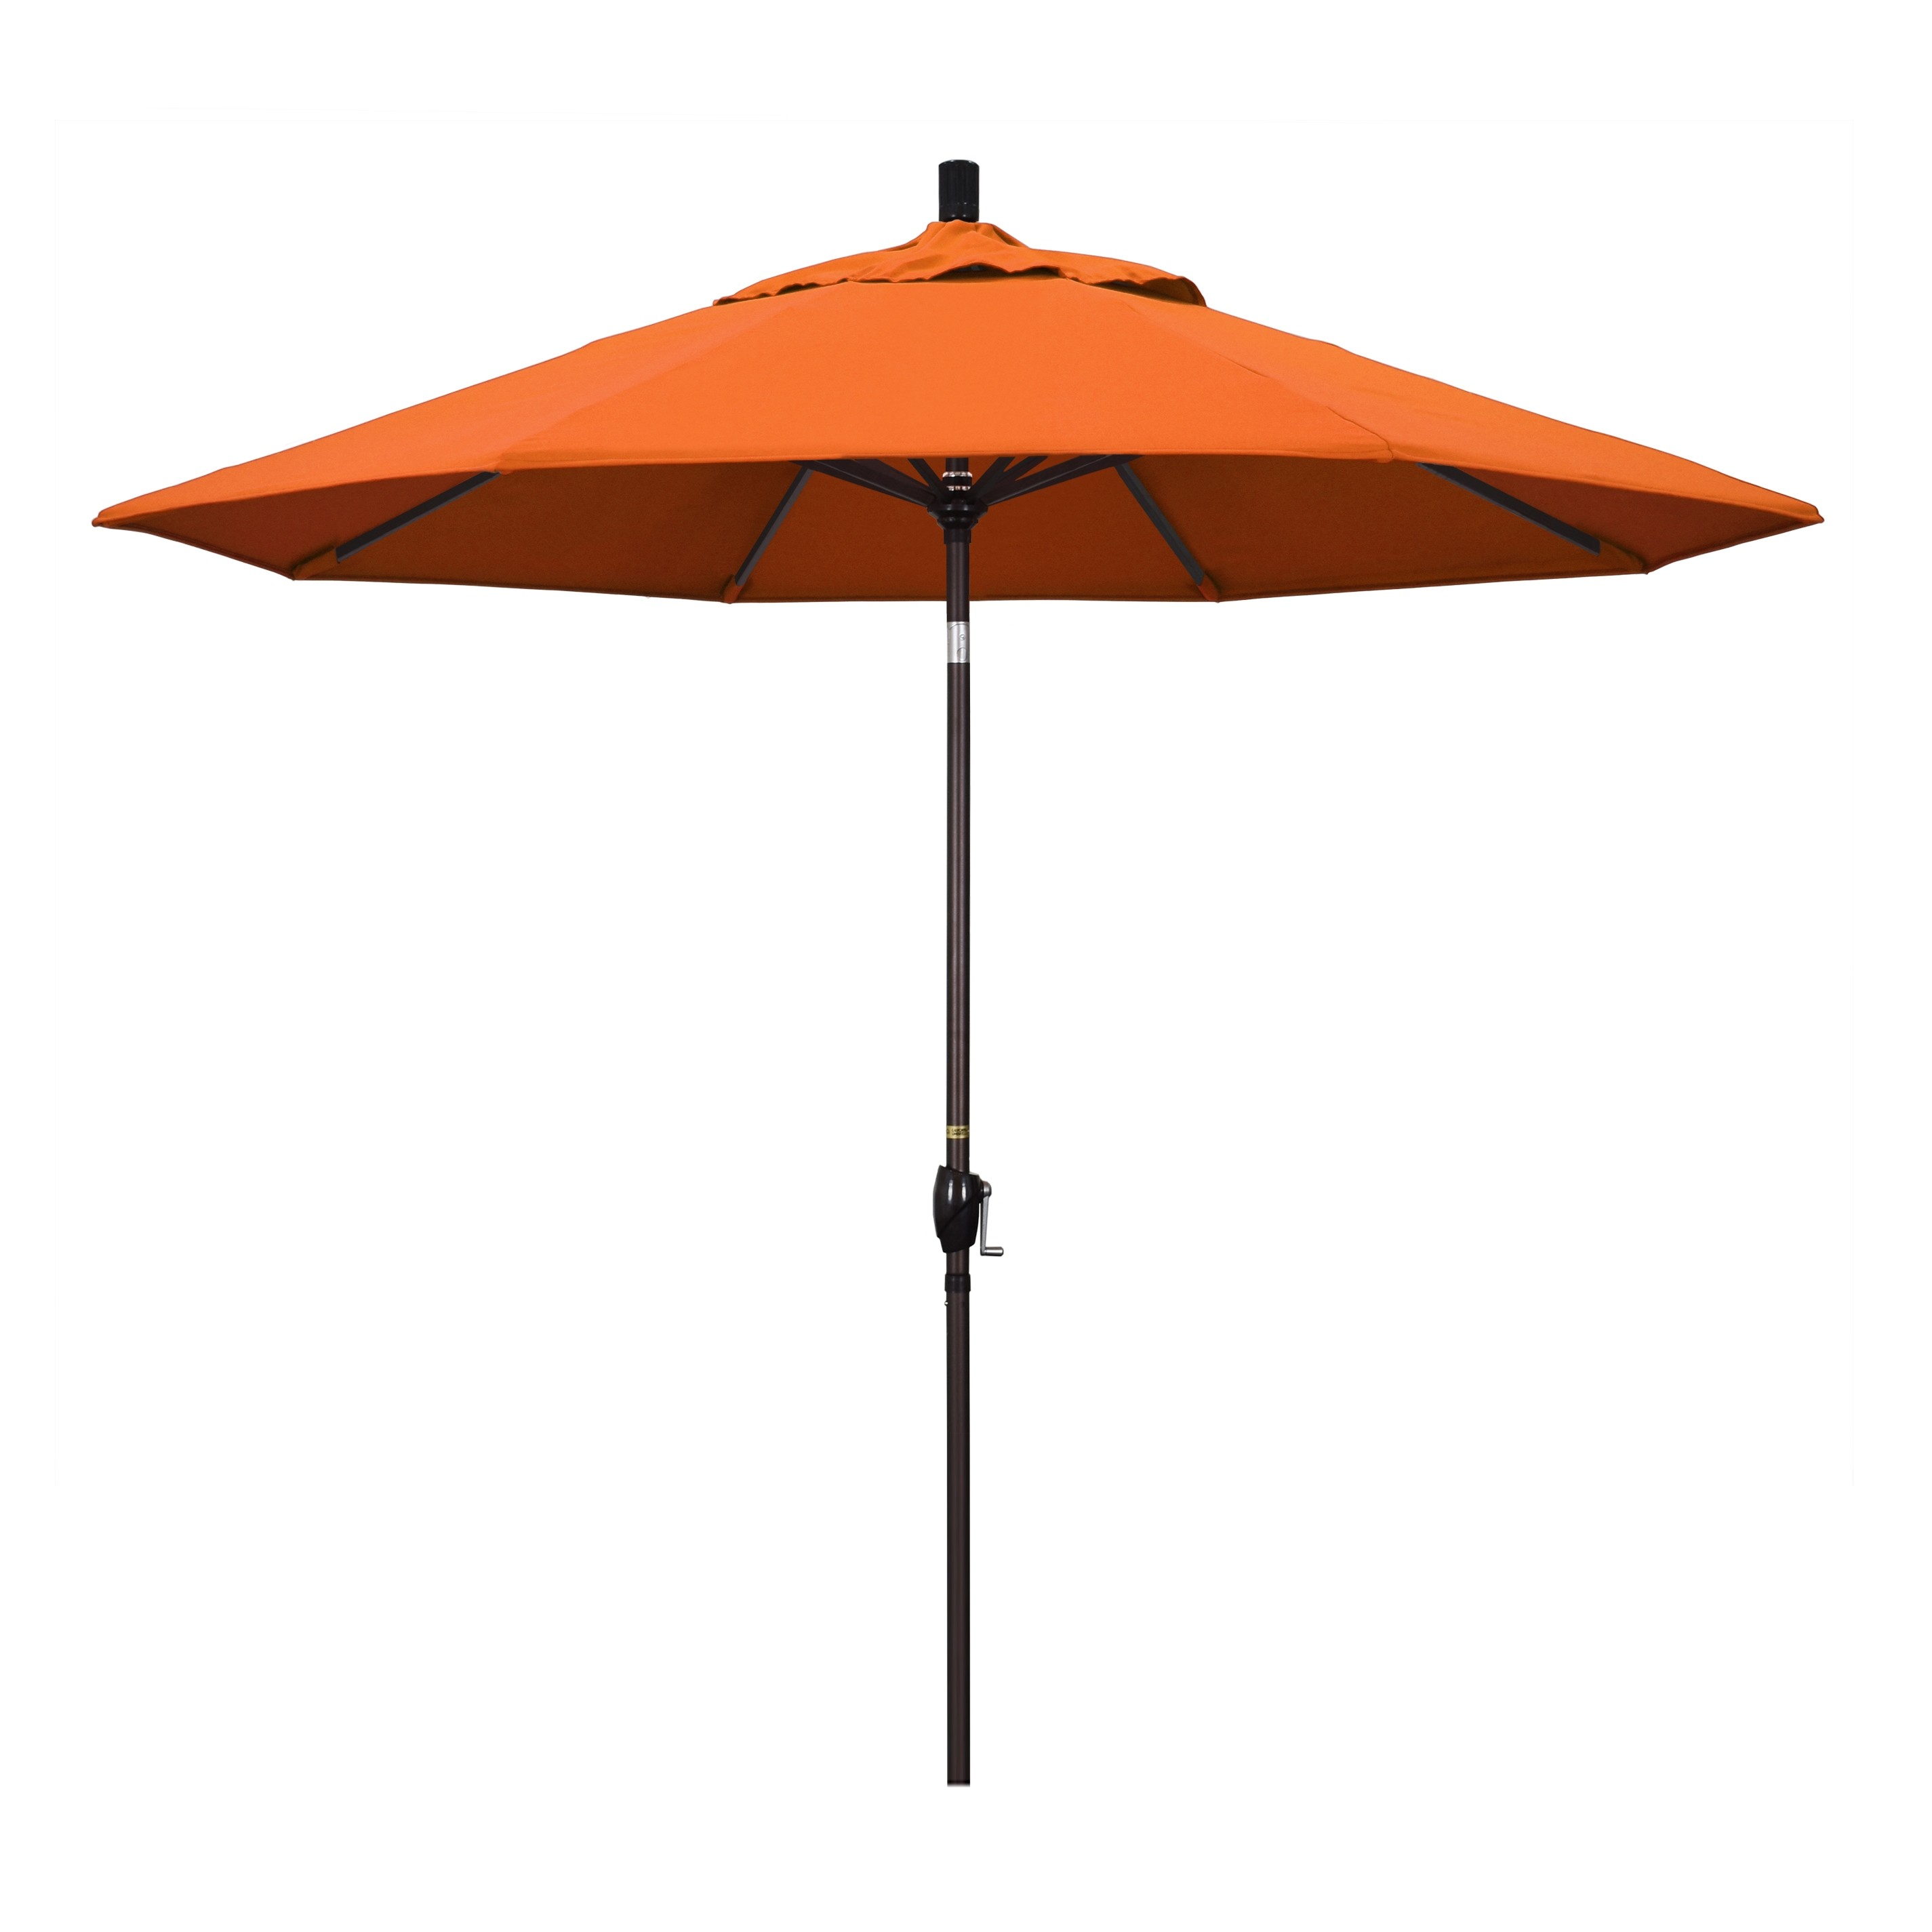 9' Market Style Outdoor Umbrella with Wind Vent Canvas Tuscan